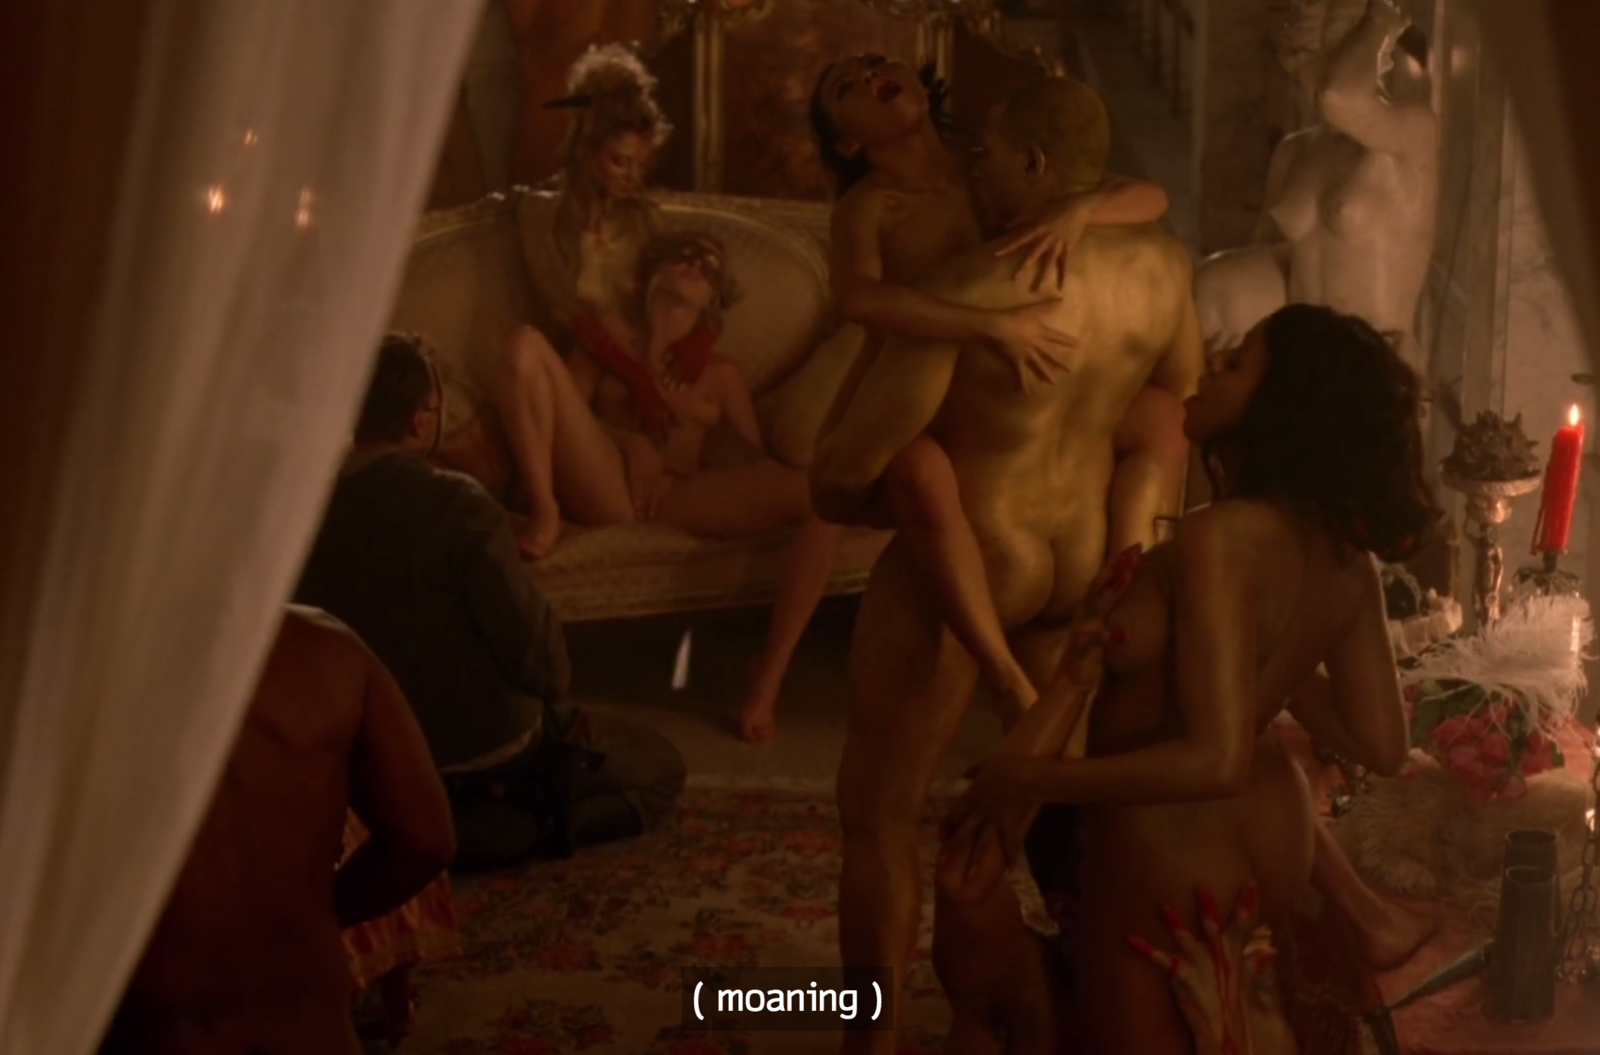 Uncensored orgy scenes